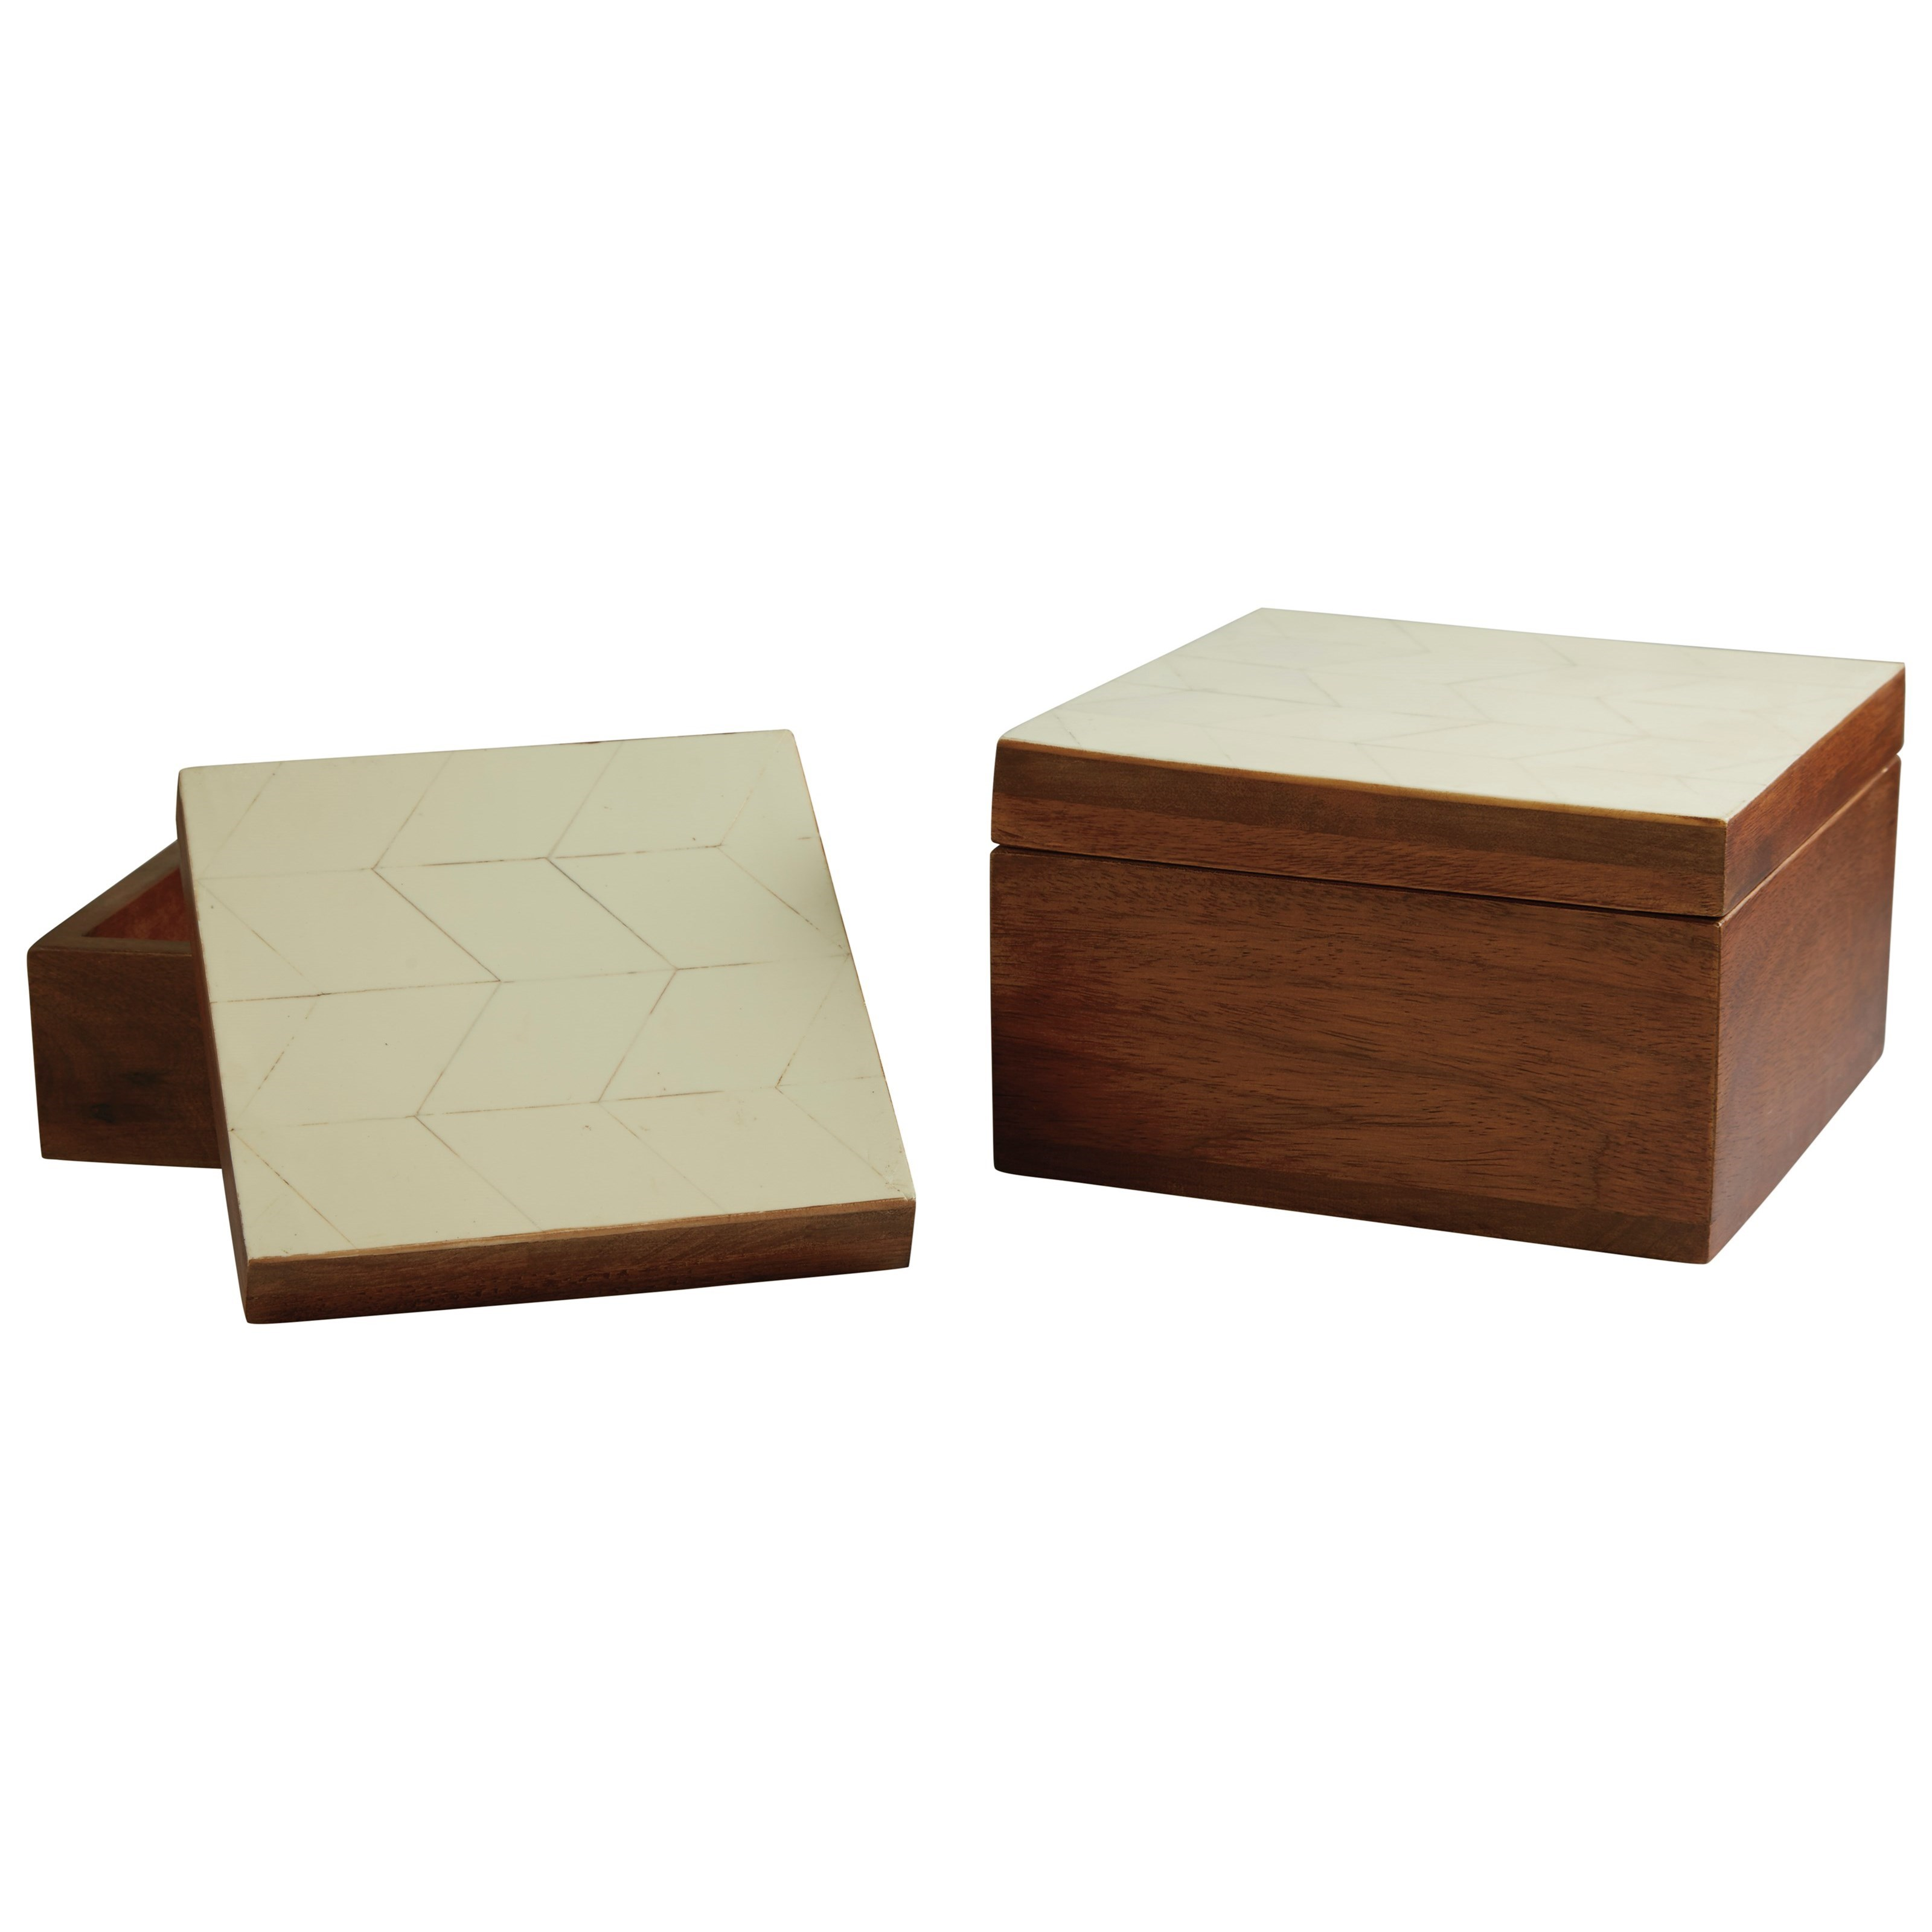 Signature Design by Ashley Accents Kabecka Brown/Cream Boxes (Set of 2) - Item Number: A2000173B